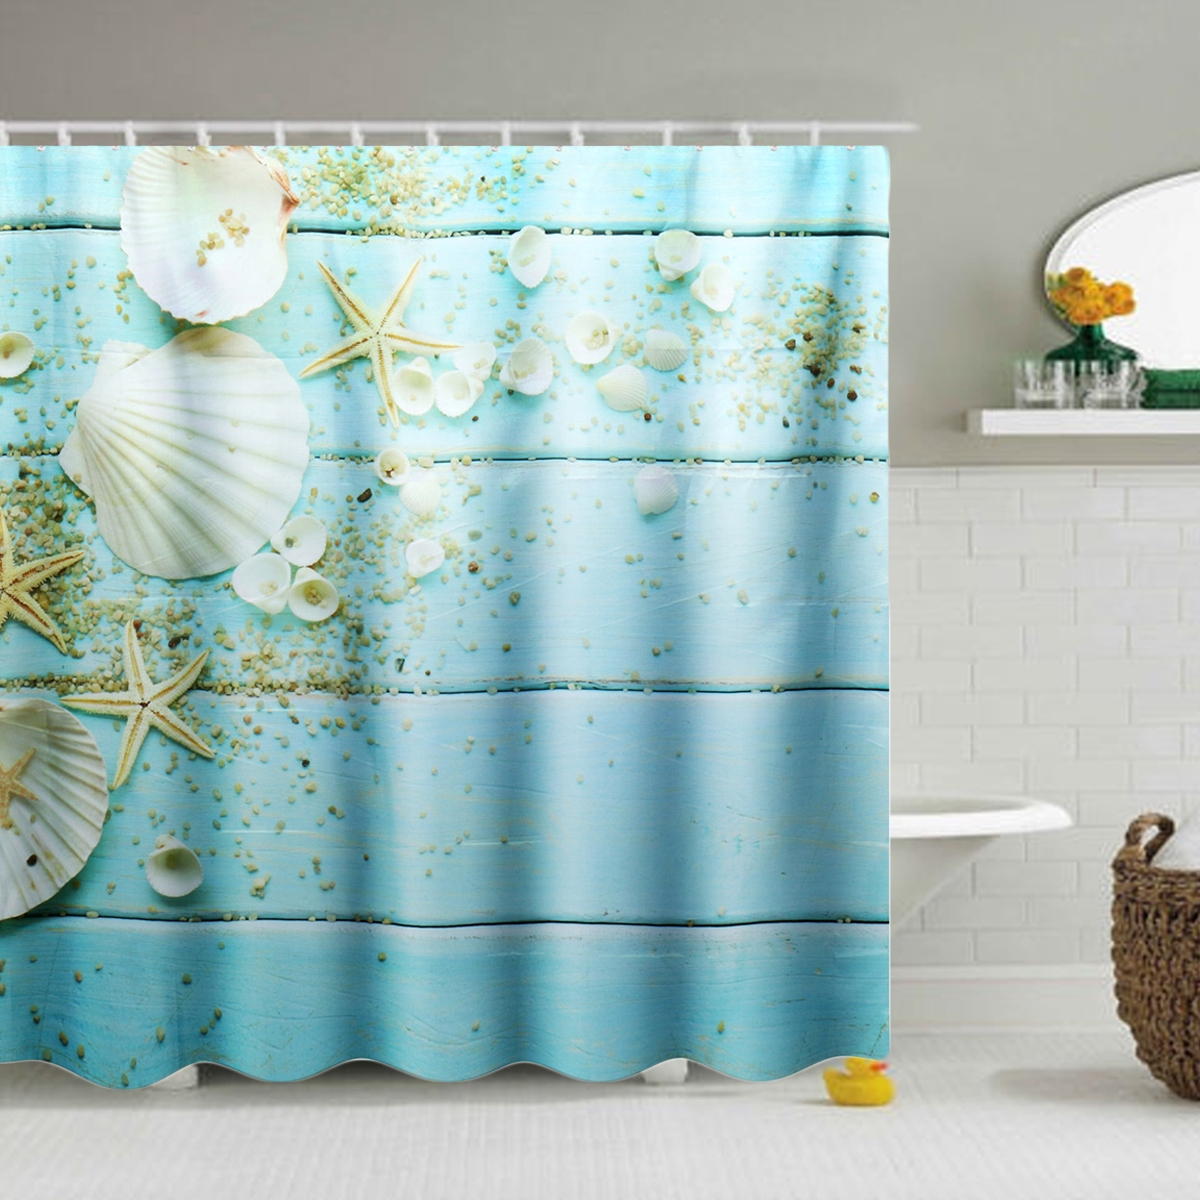 Waterproof Polyester Shells Starfish Sand Bathroom Bath Shower Curtains With 12 Hooks